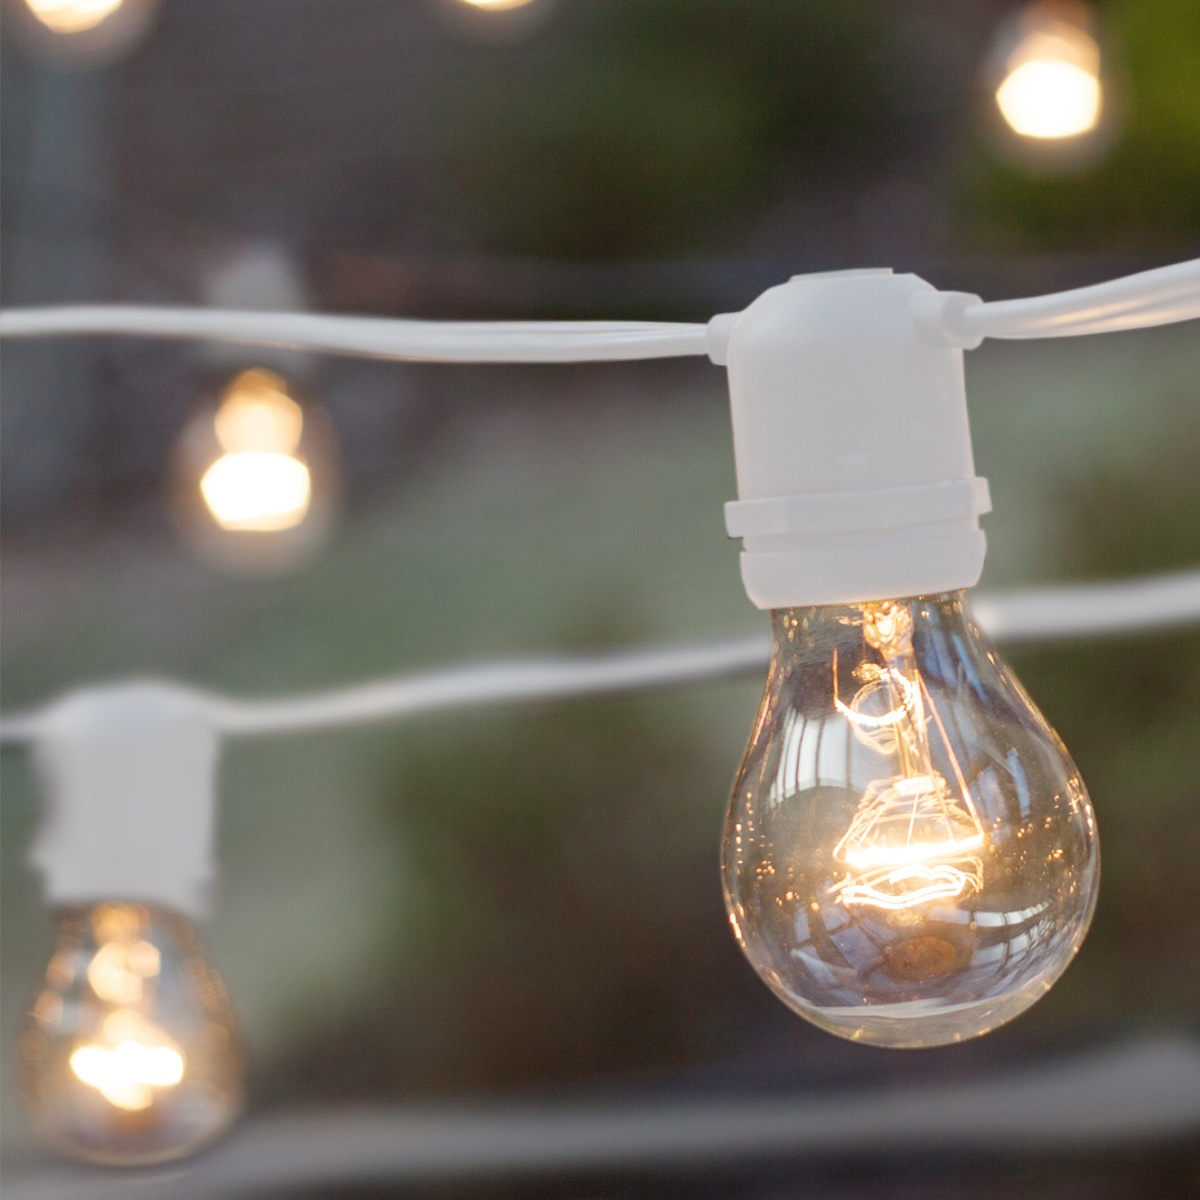 Commercial Patio String Lights, Clear A19 Bulbs, White Wire - Yard Envy